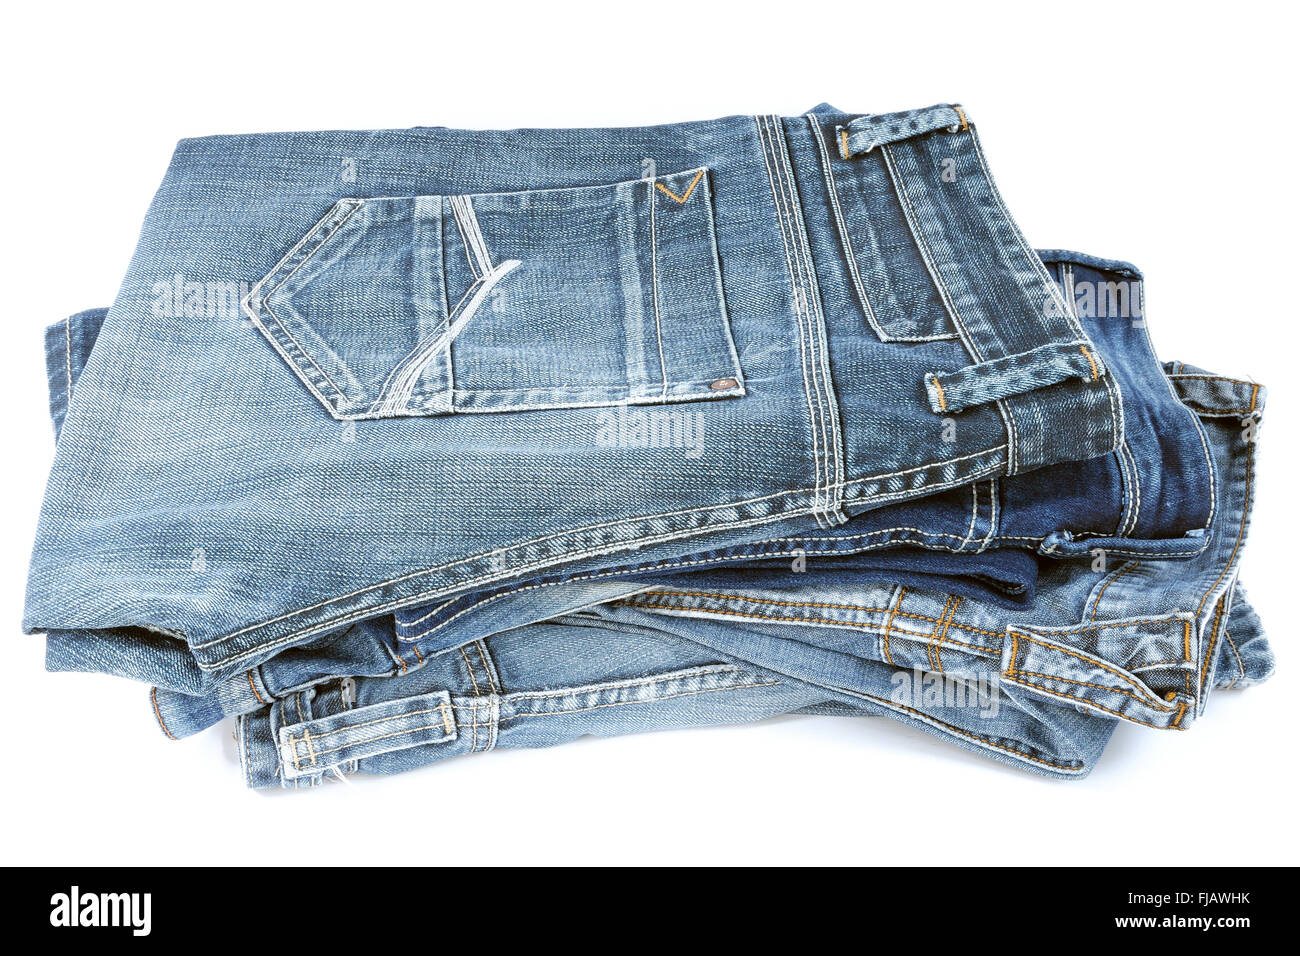 Various models of jeans for men stacked up and photographed in the studio - Stock Image